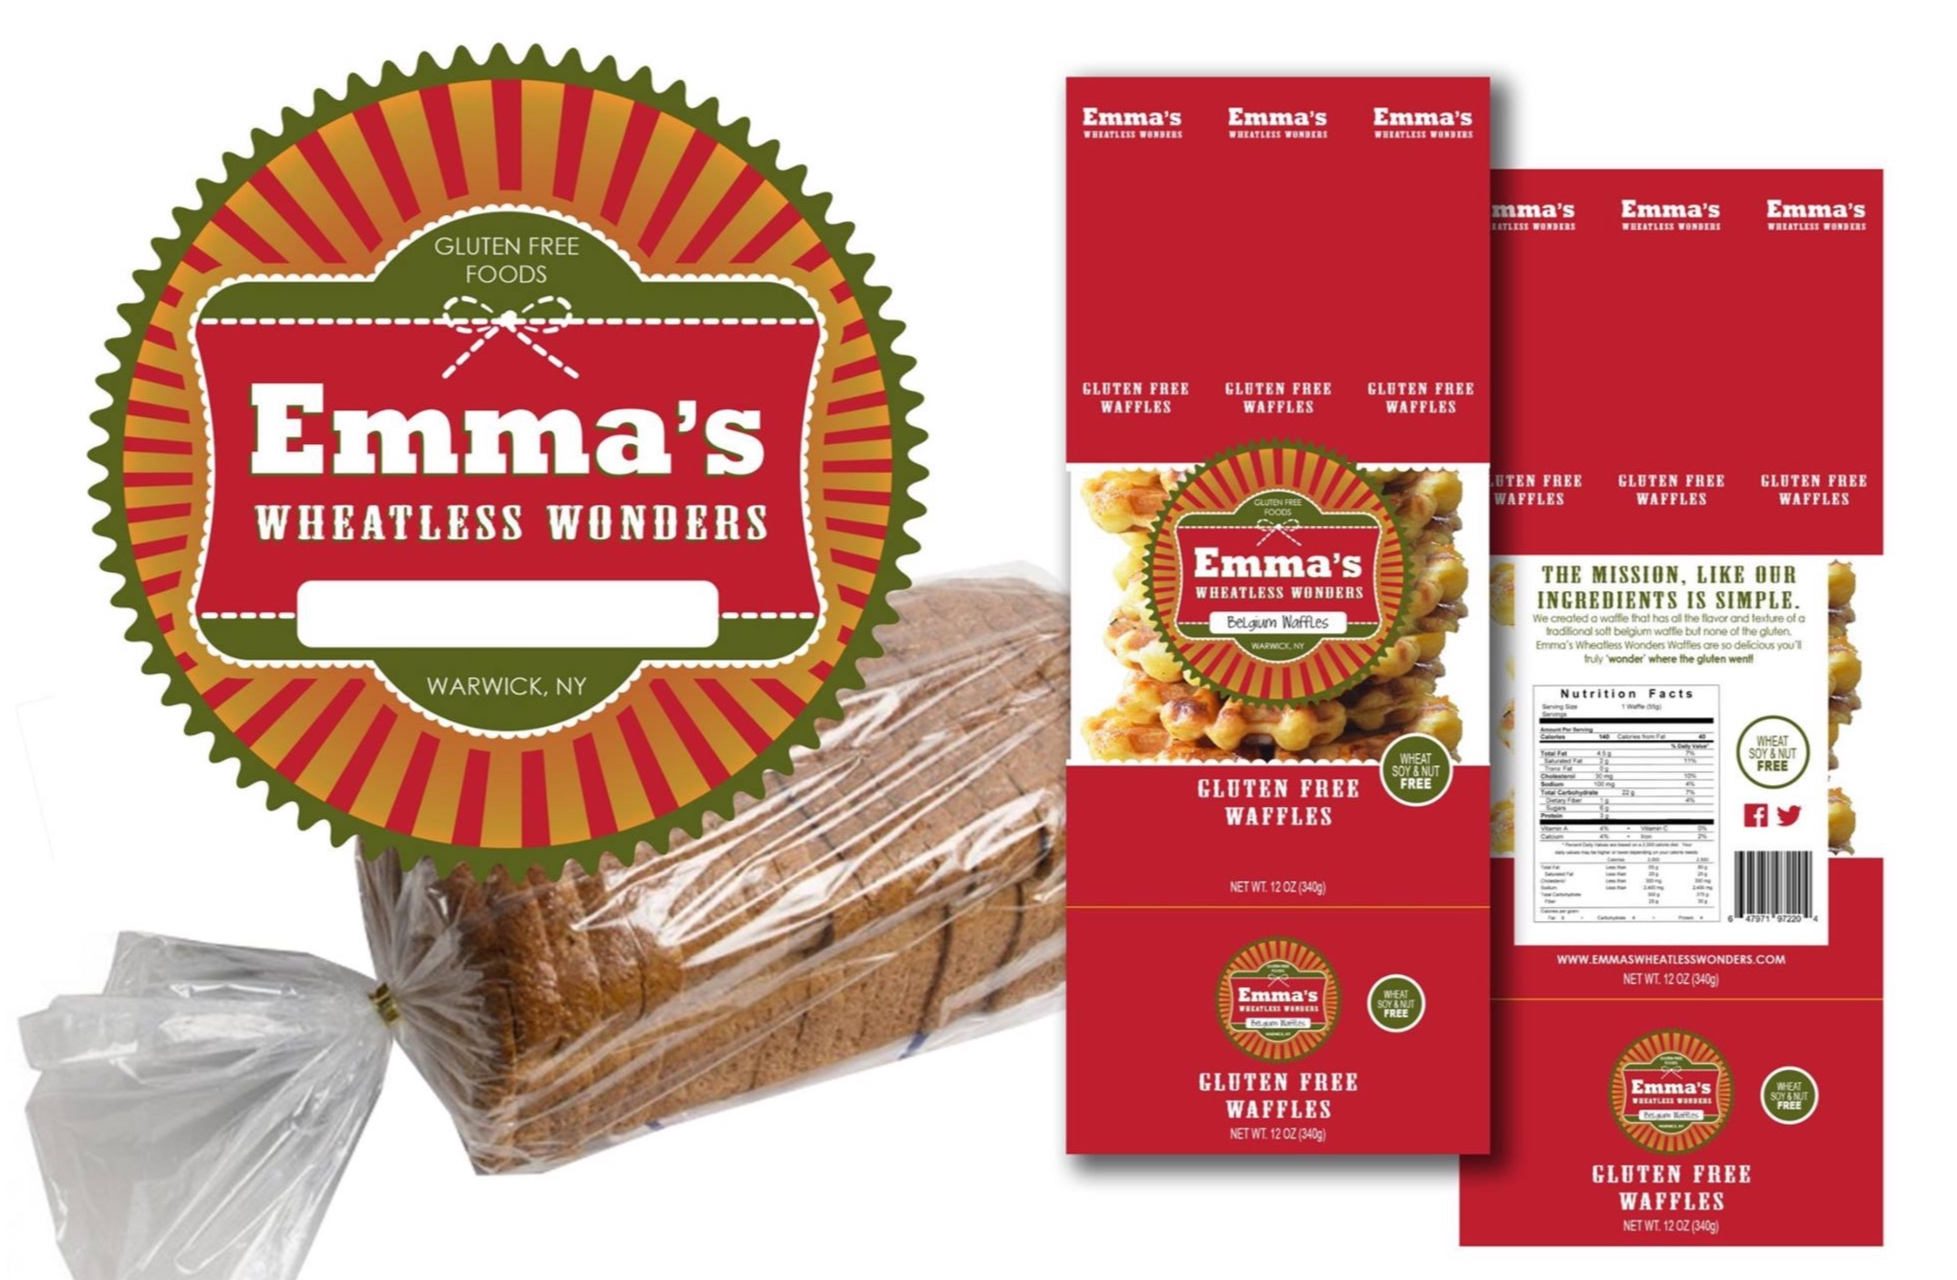 Logo and Packaging:  Emma's Wheatless Wonders Gluten Free Foods